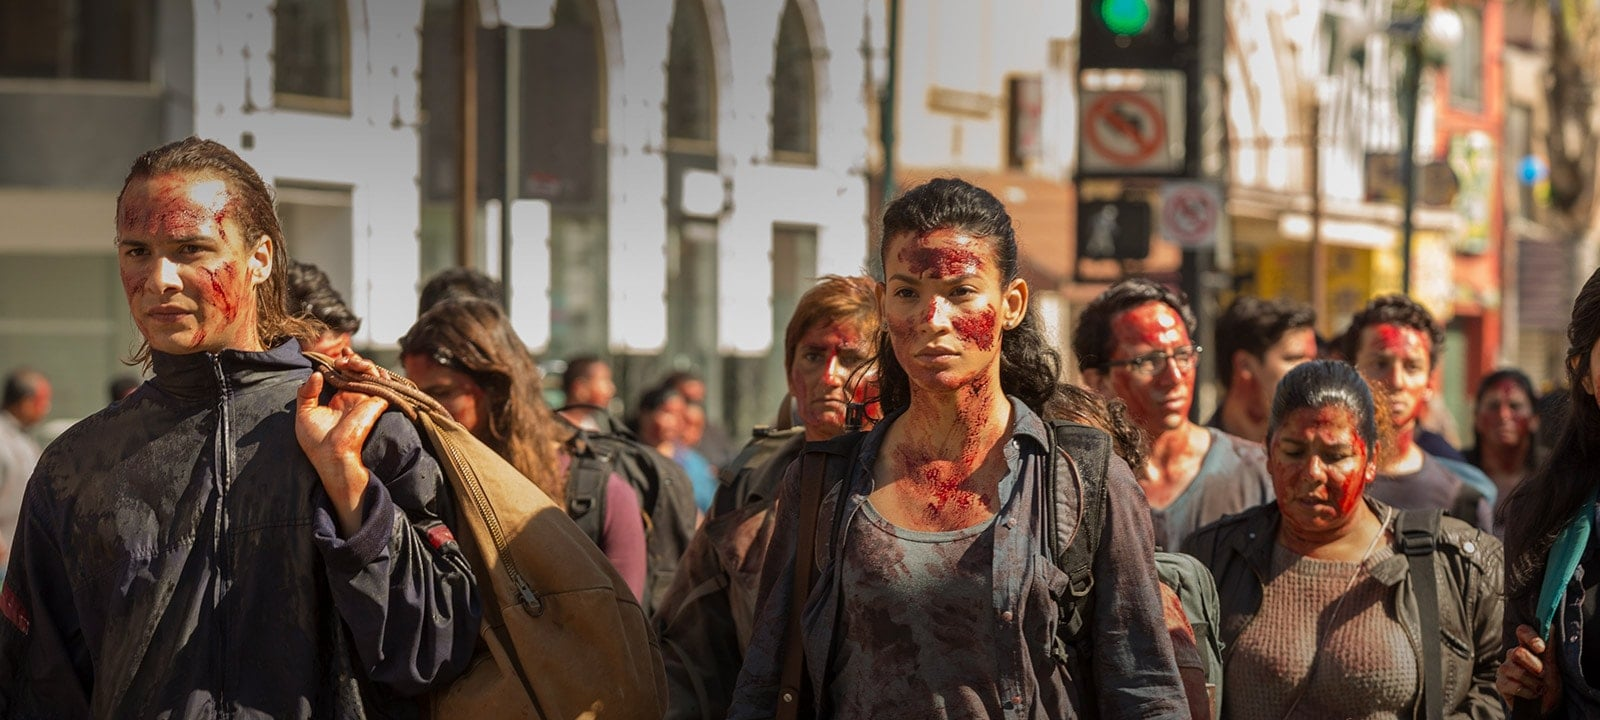 fear-the-walking-dead-episode-215-nick-dillane-luciana-garcia-post-800×600